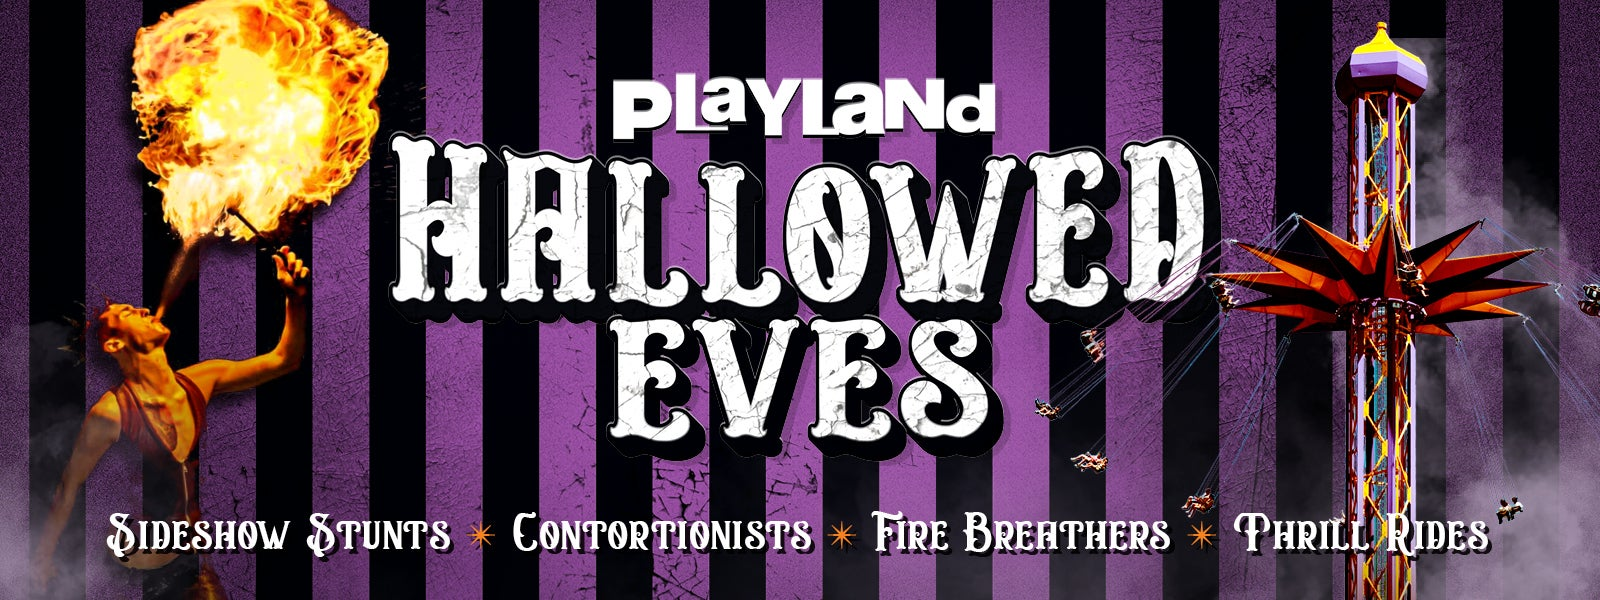 Playland Hallowed Eves